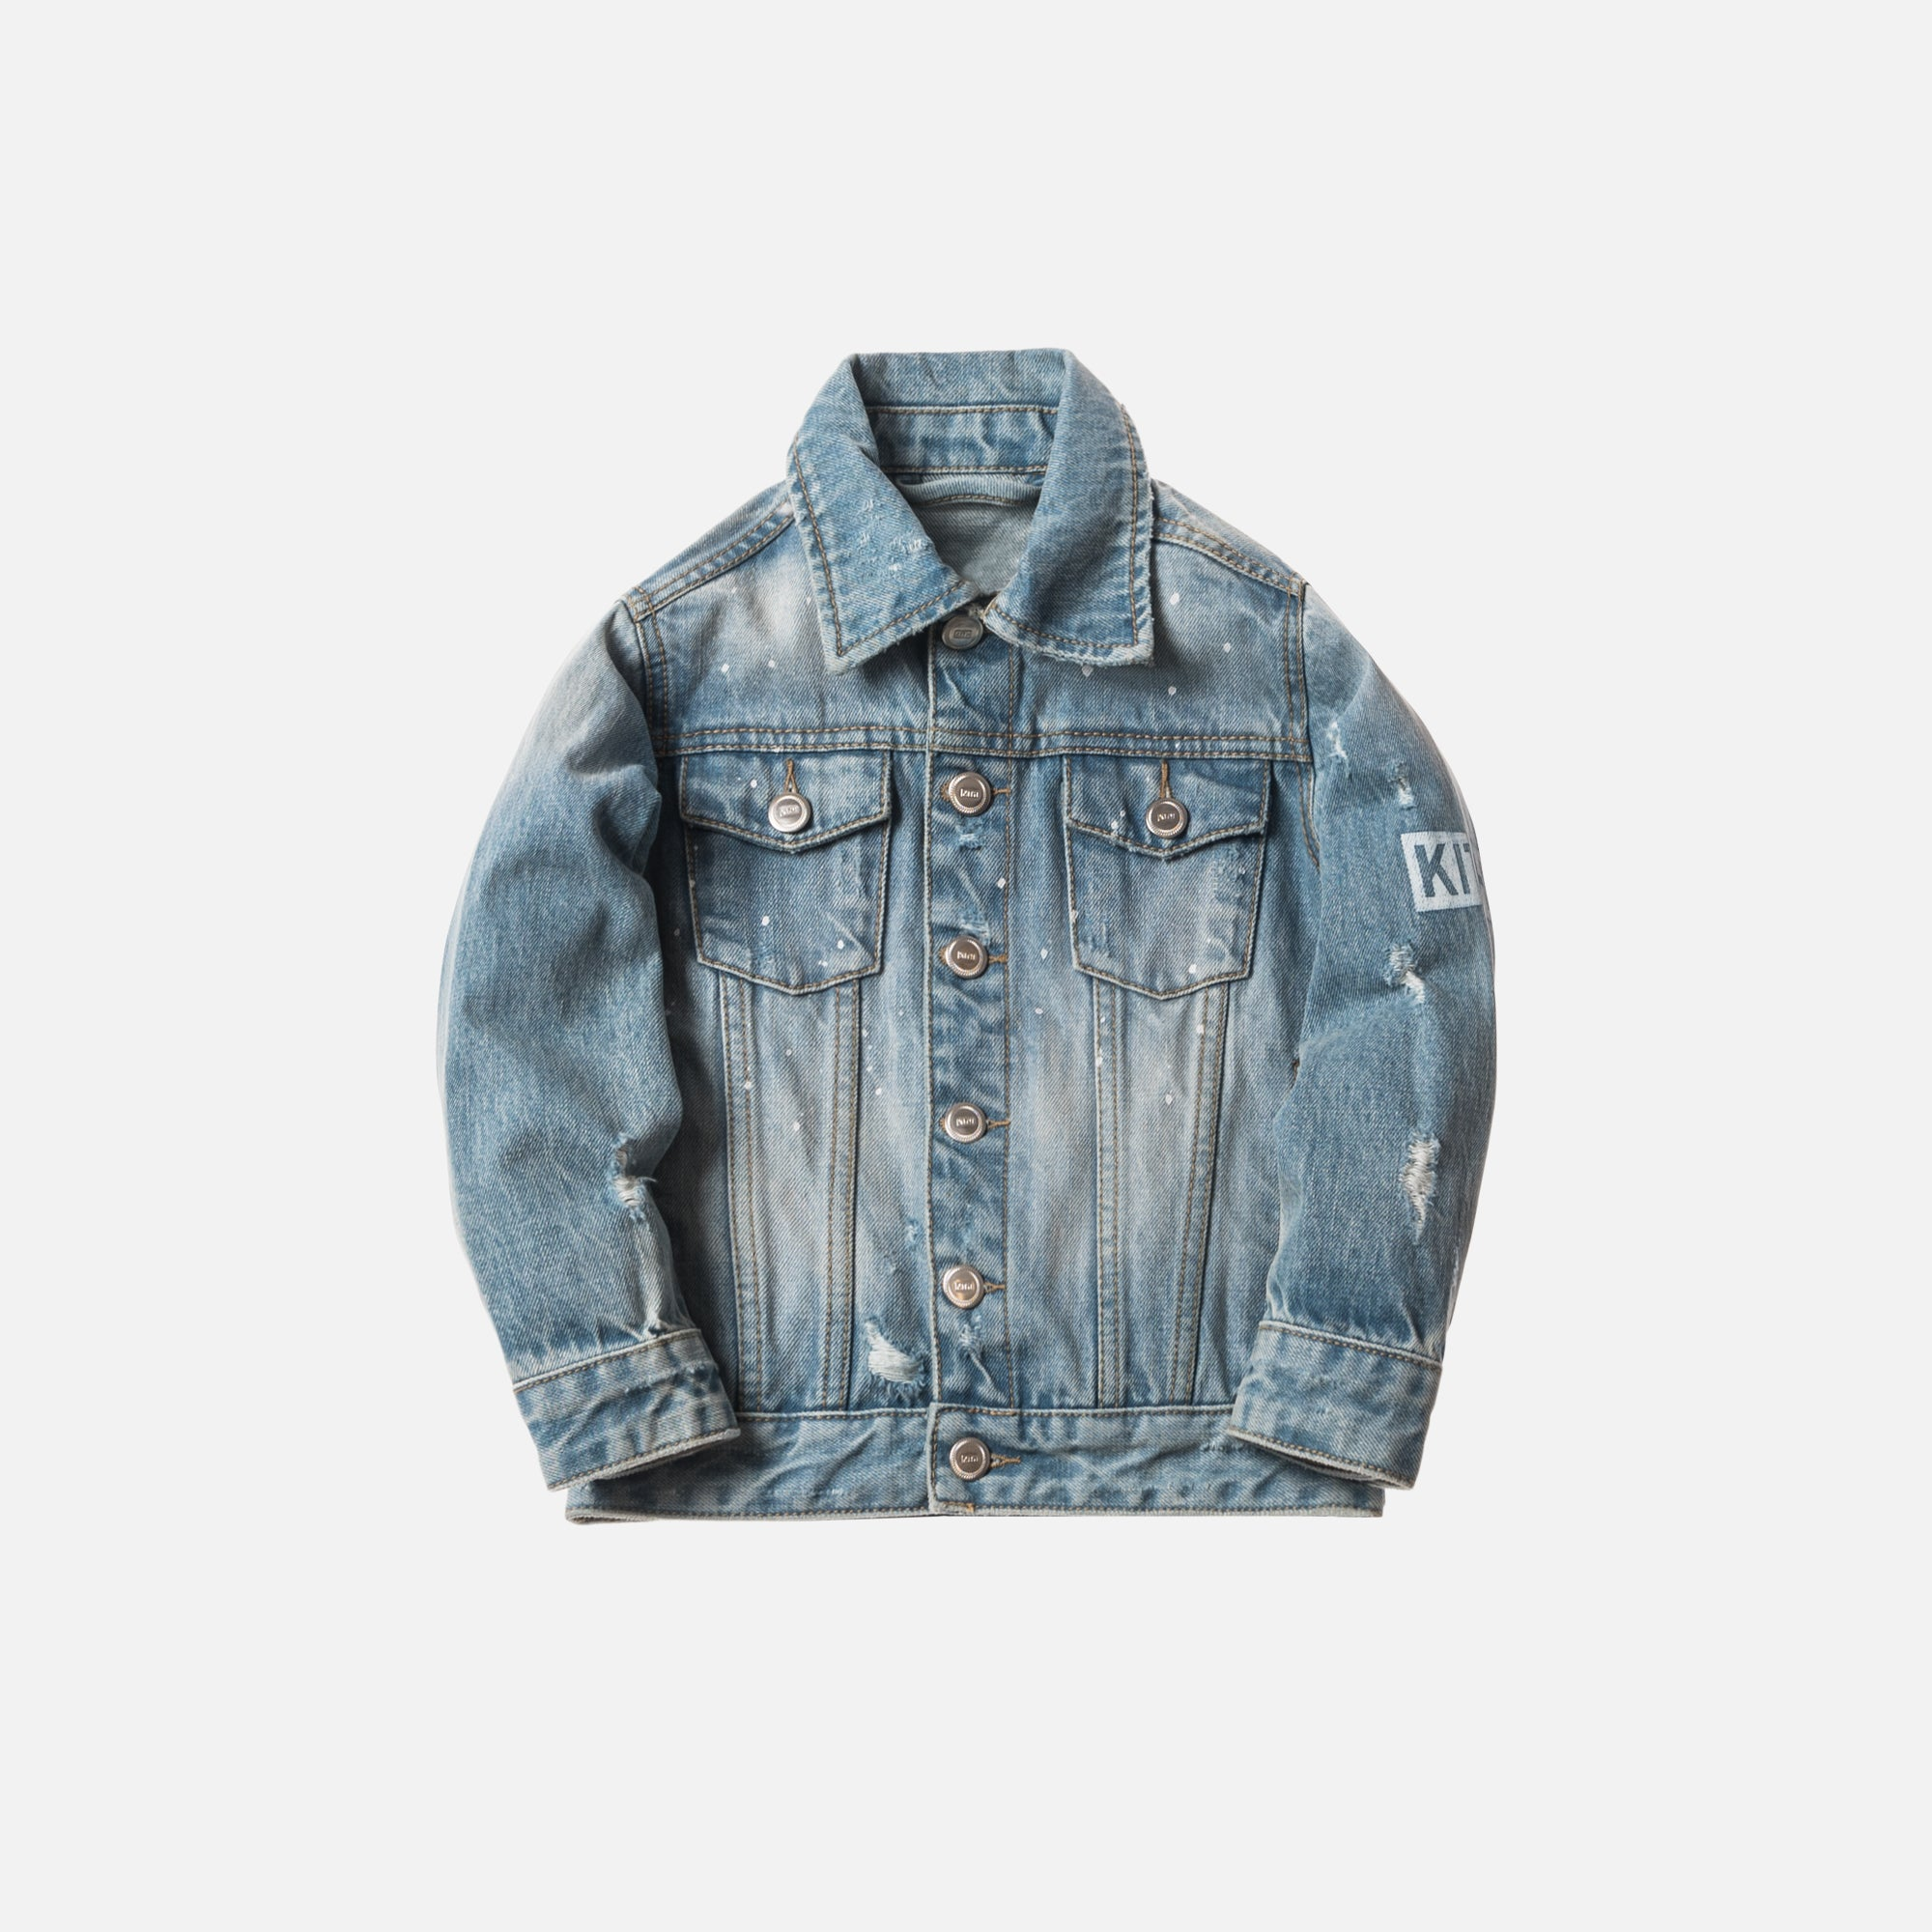 Kith Kids Laight Denim Jacket - Hosu Blue